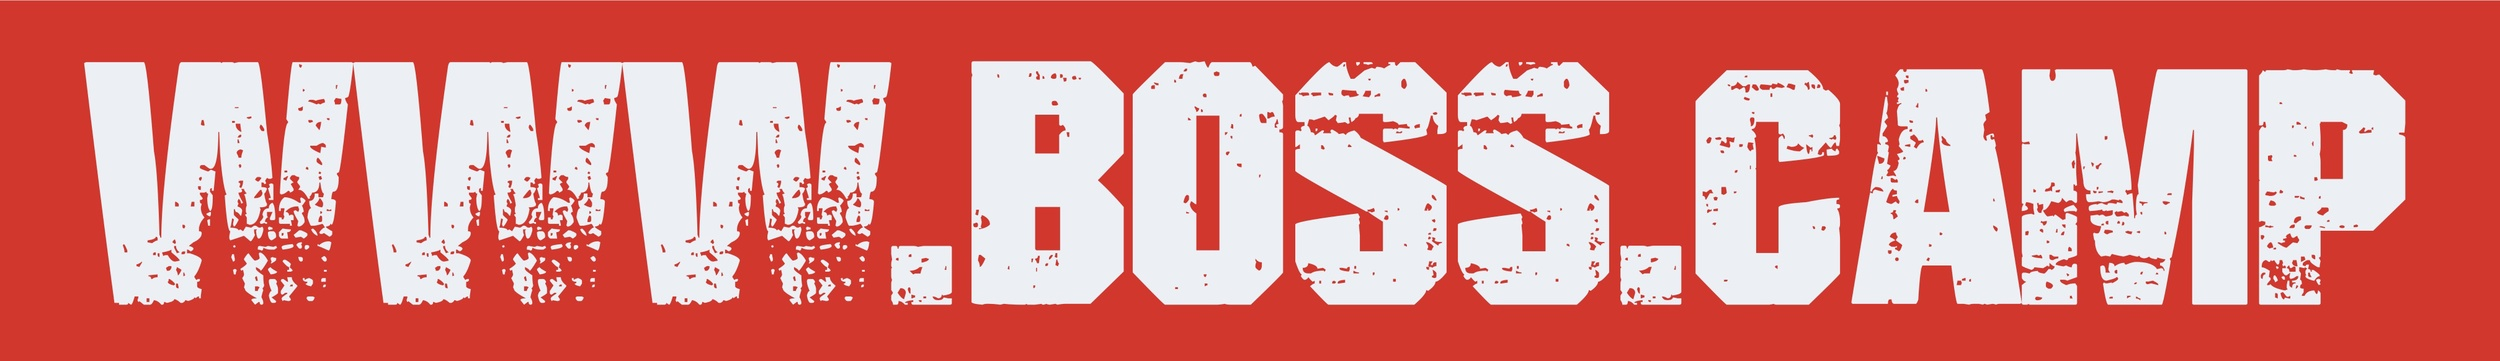 Find out how to be a better boss and make managing easy at www.boss.camp Jpeg